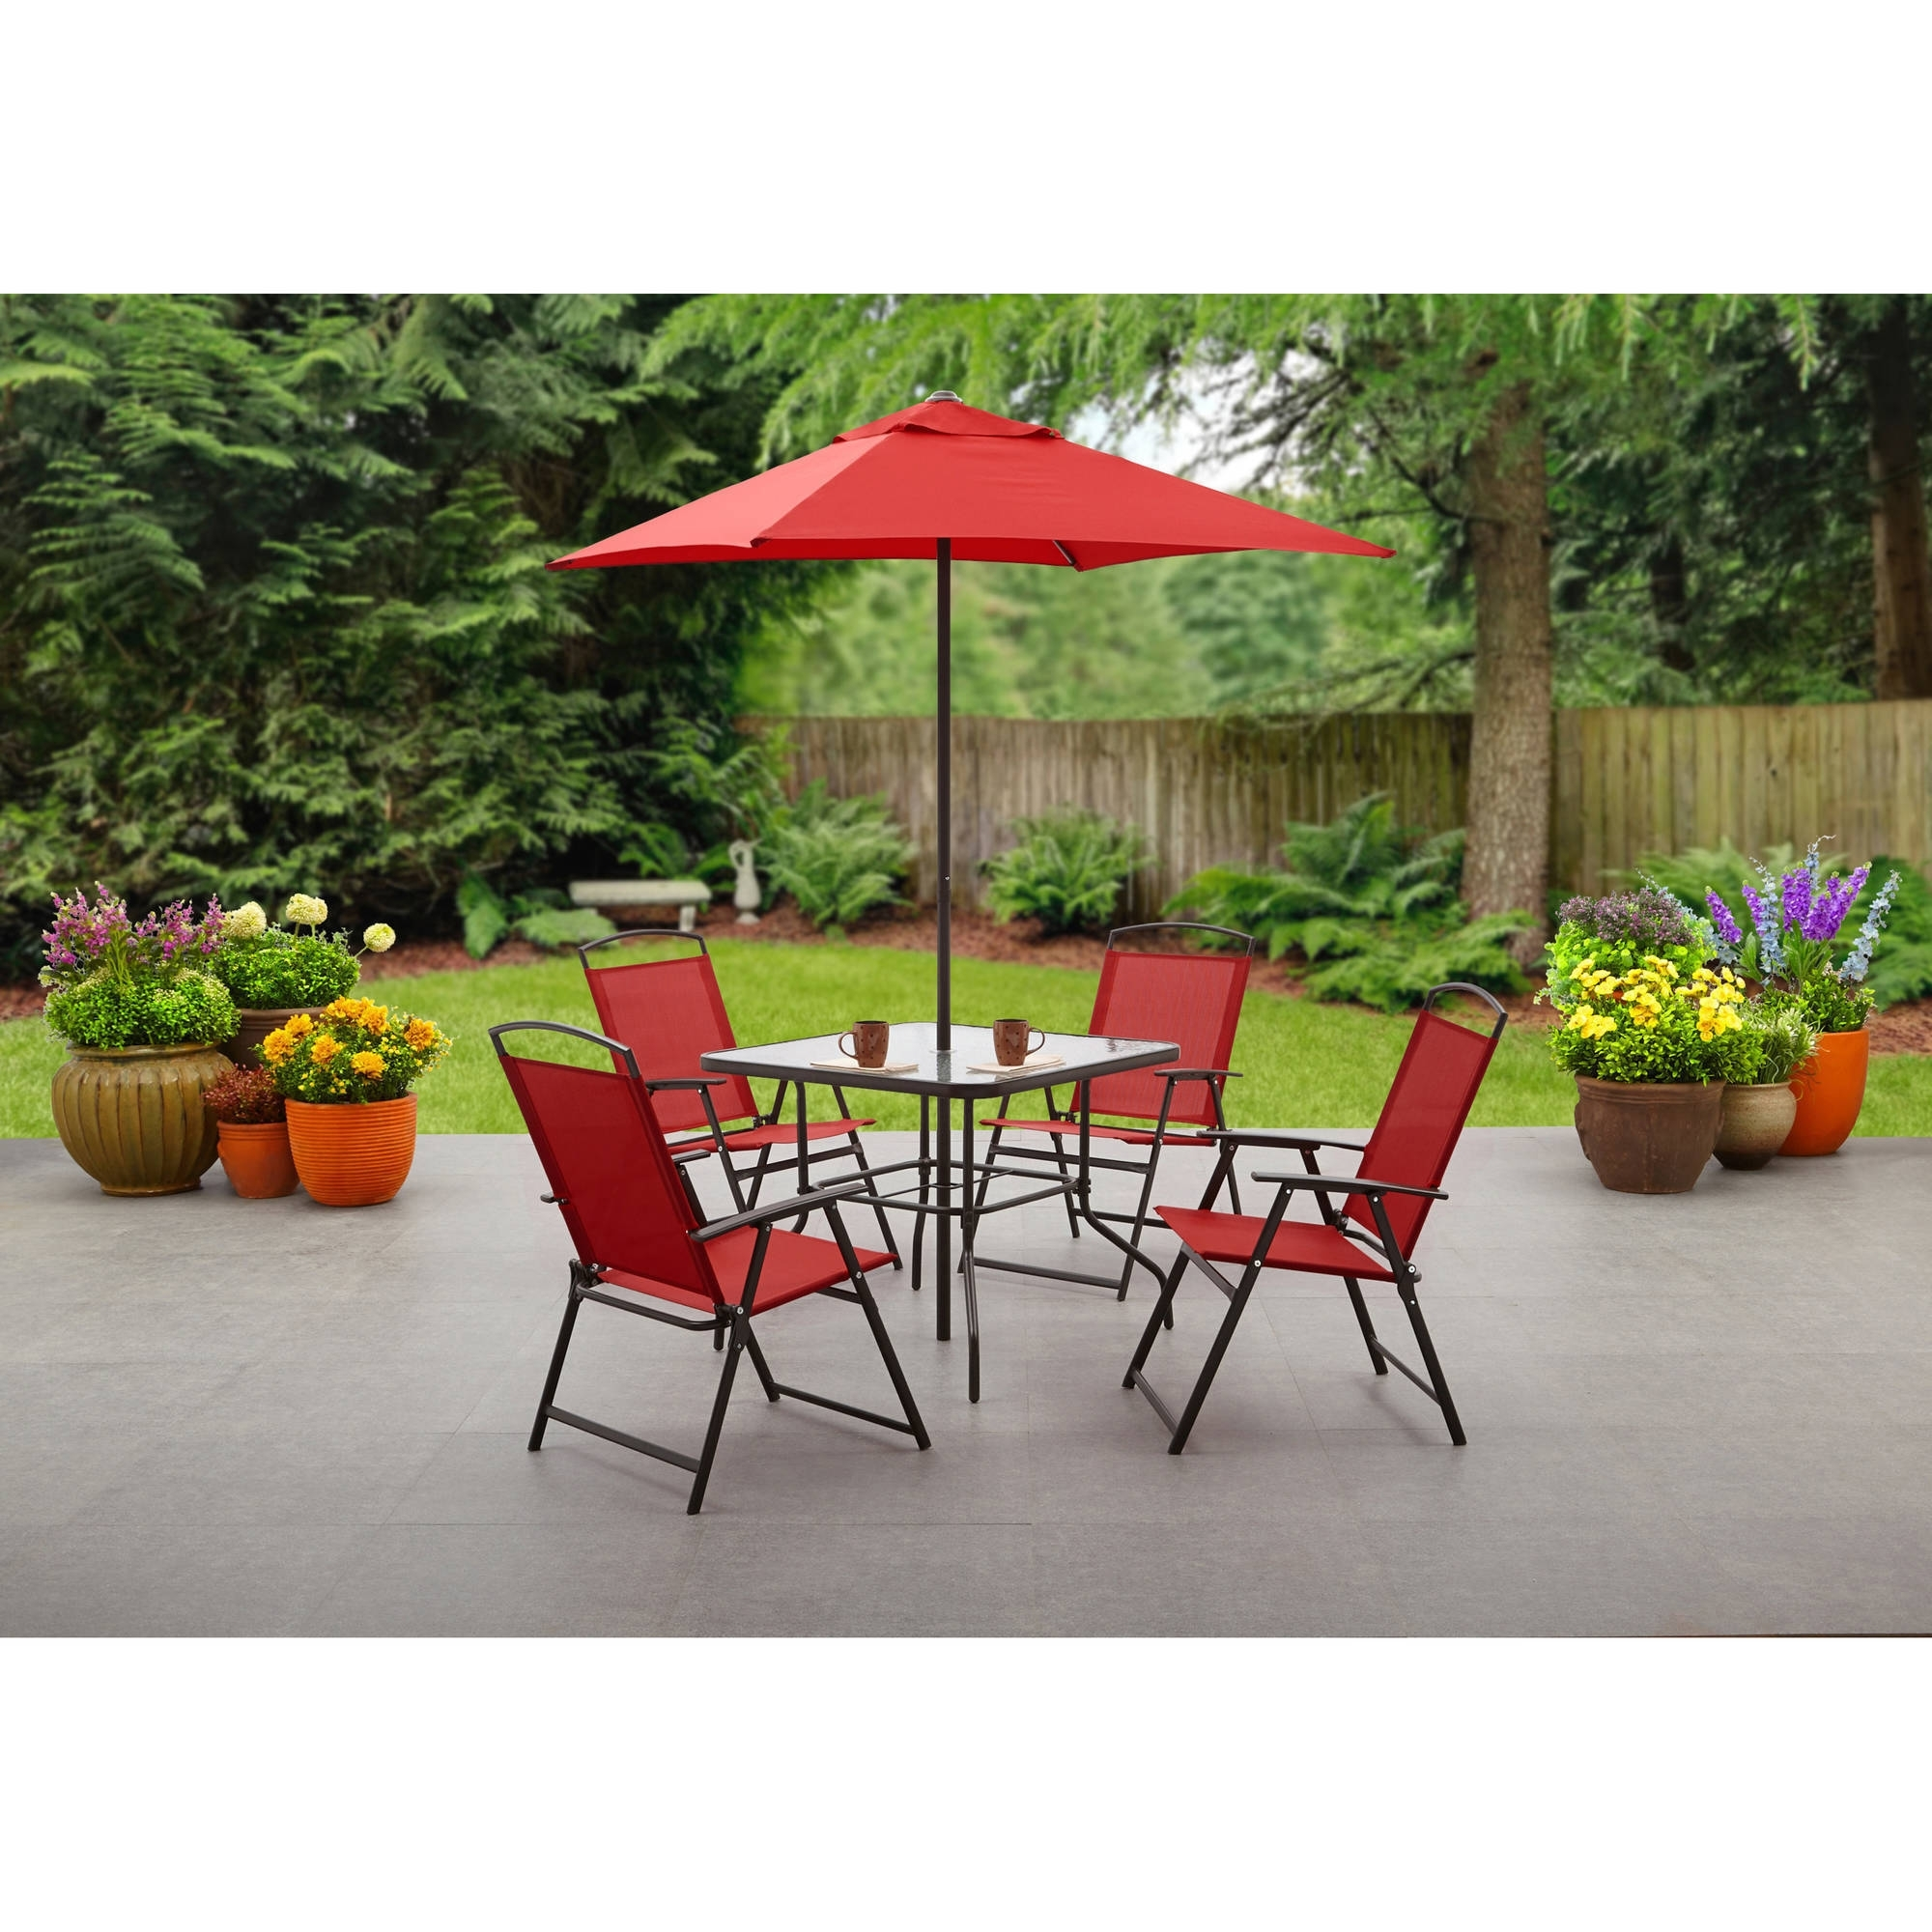 Popular Small Patio Tables With Umbrellas With Regard To Mainstays Albany Lane 6 Piece Folding Dining Set, Multiple Colors (View 11 of 20)